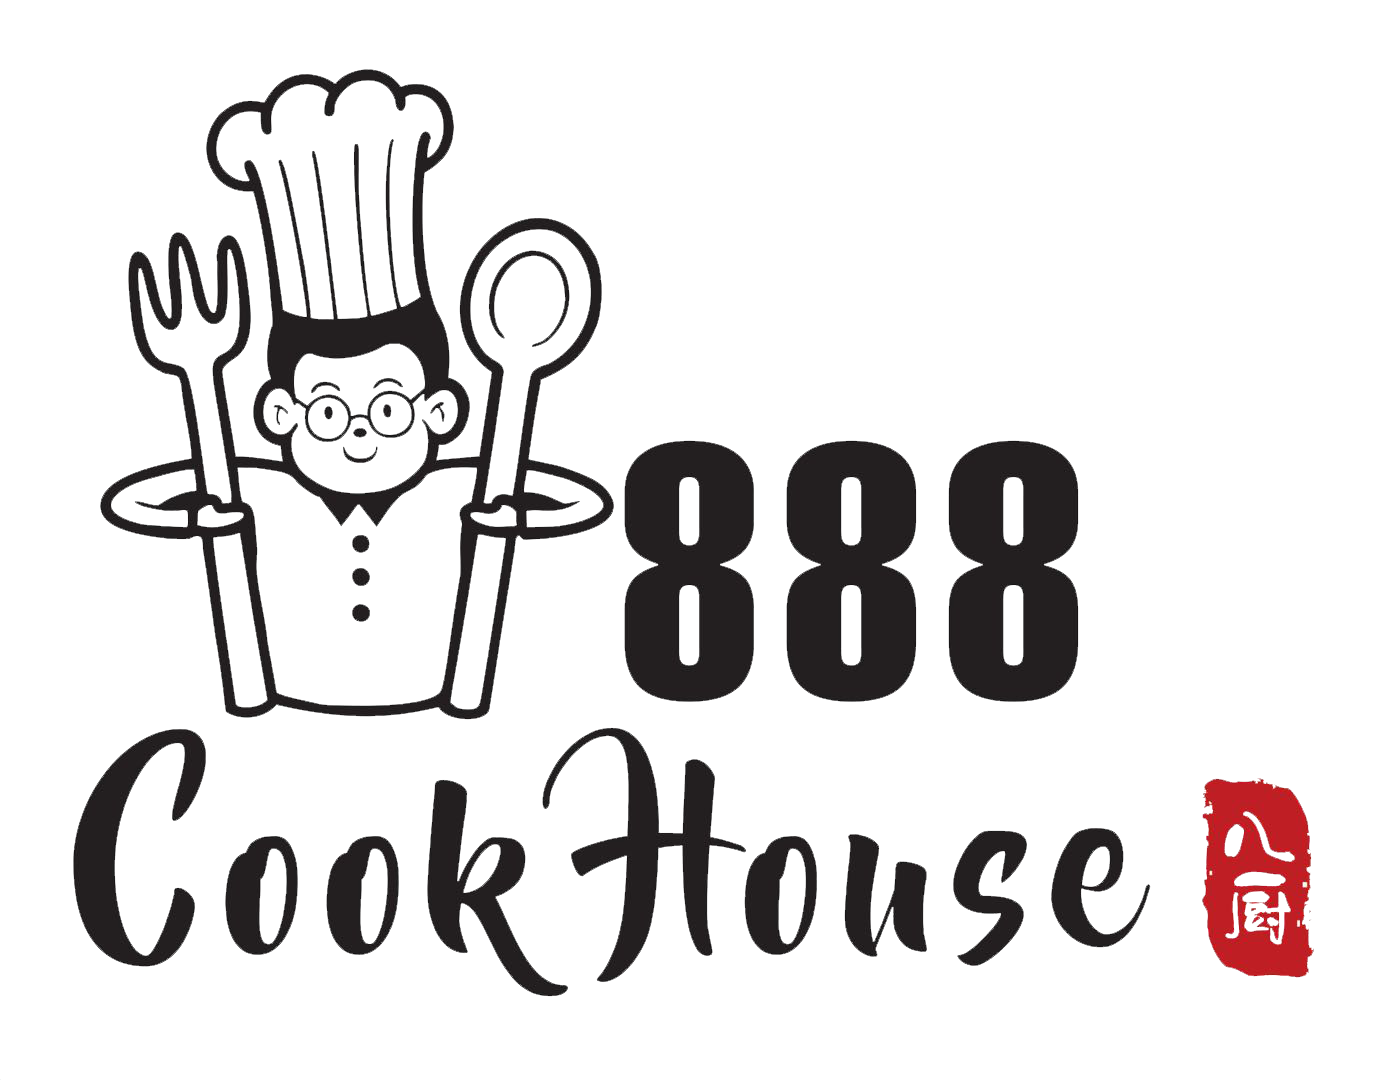 888 cookhouse